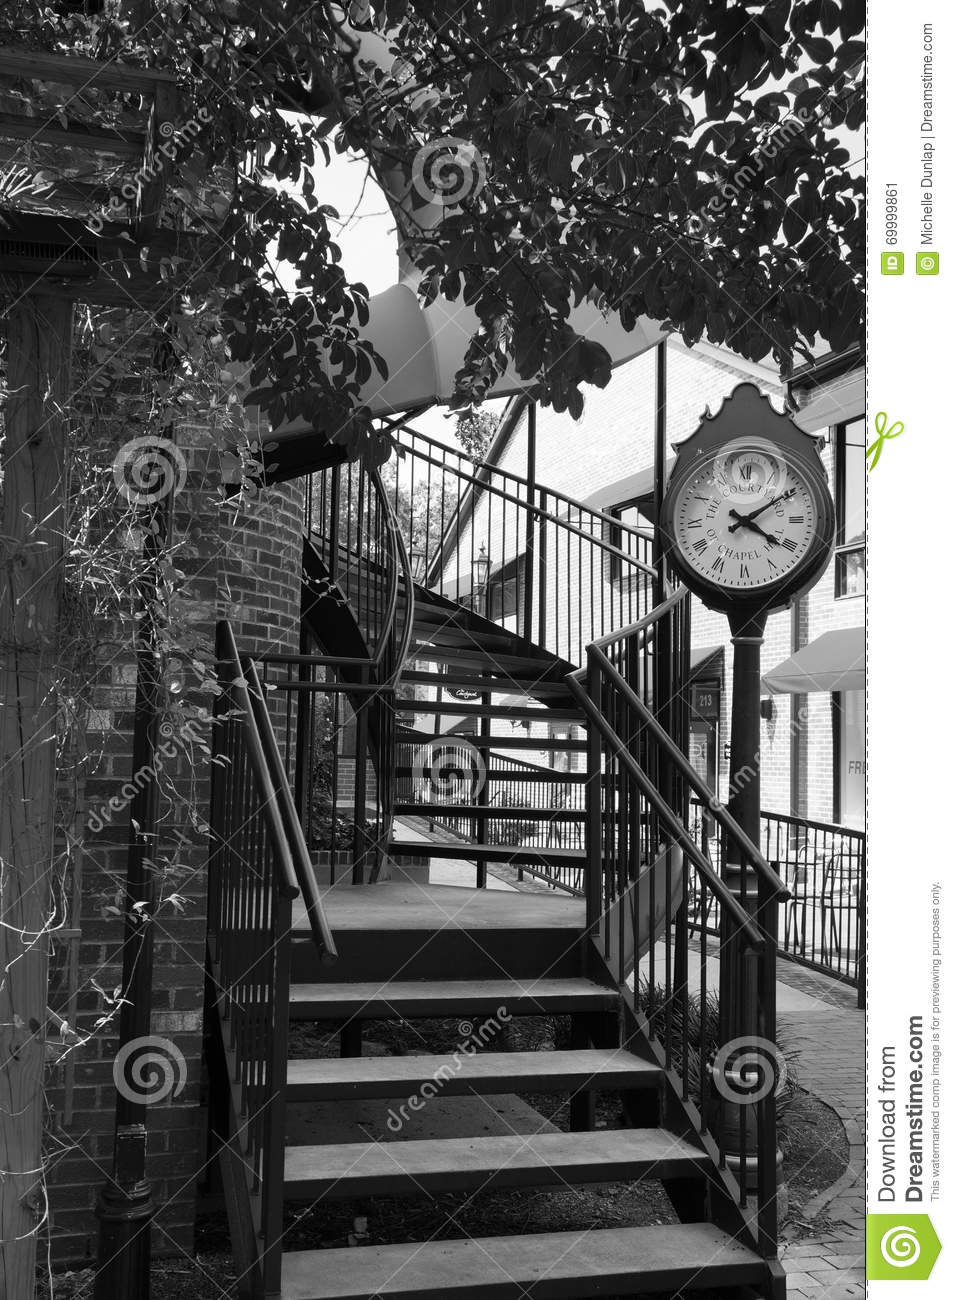 Vintage Clock and Spiral Stairs in Black and White